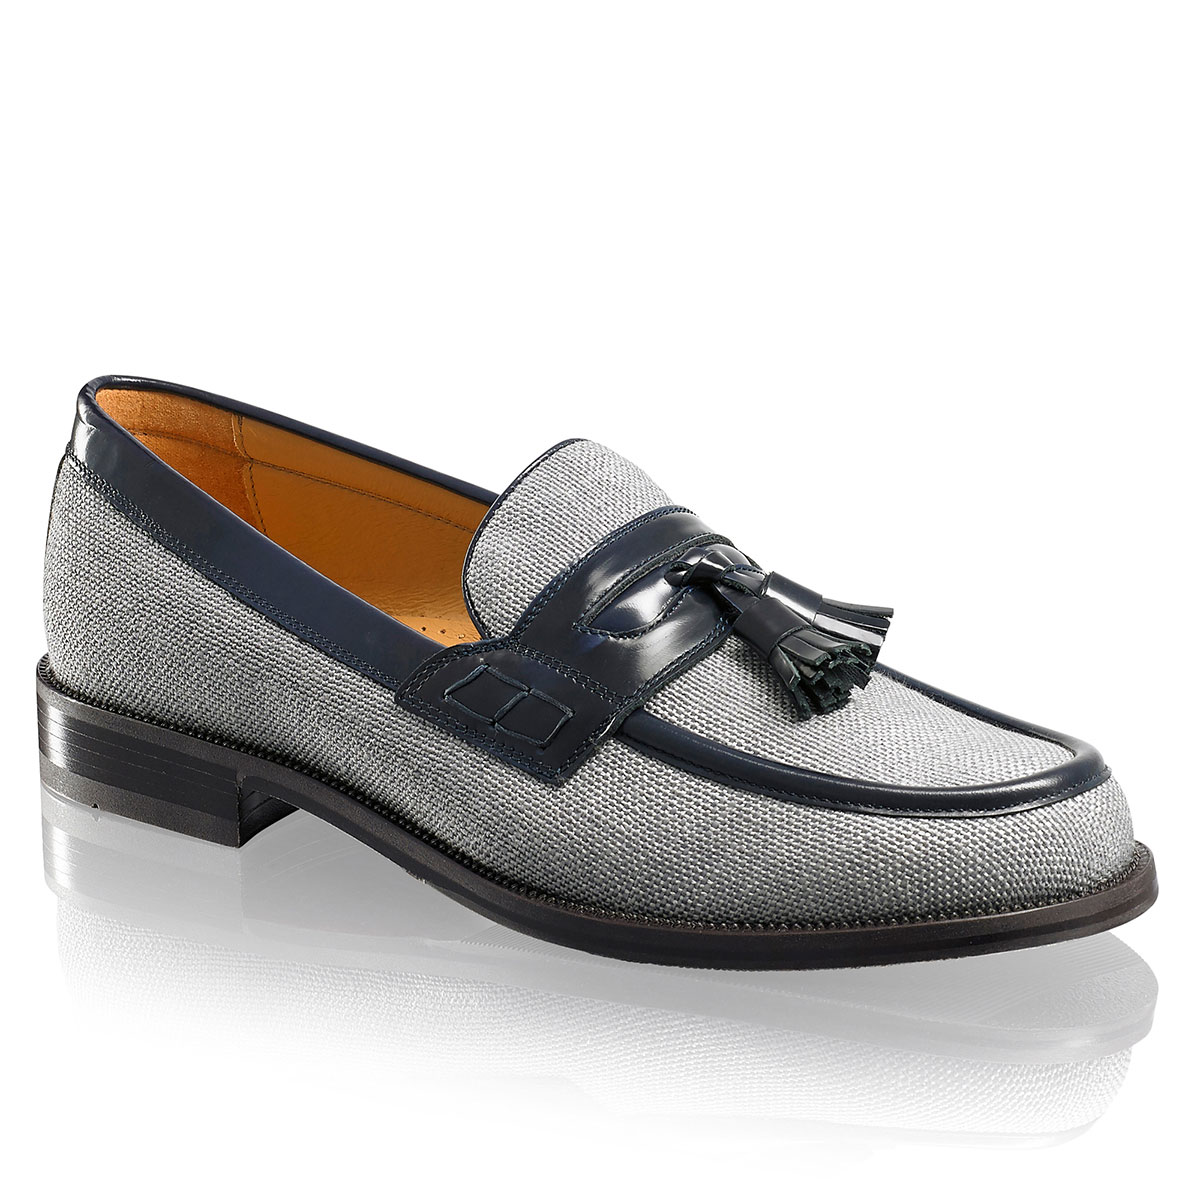 Russell and Bromley KEEBLE 4 Tassel College Loafer